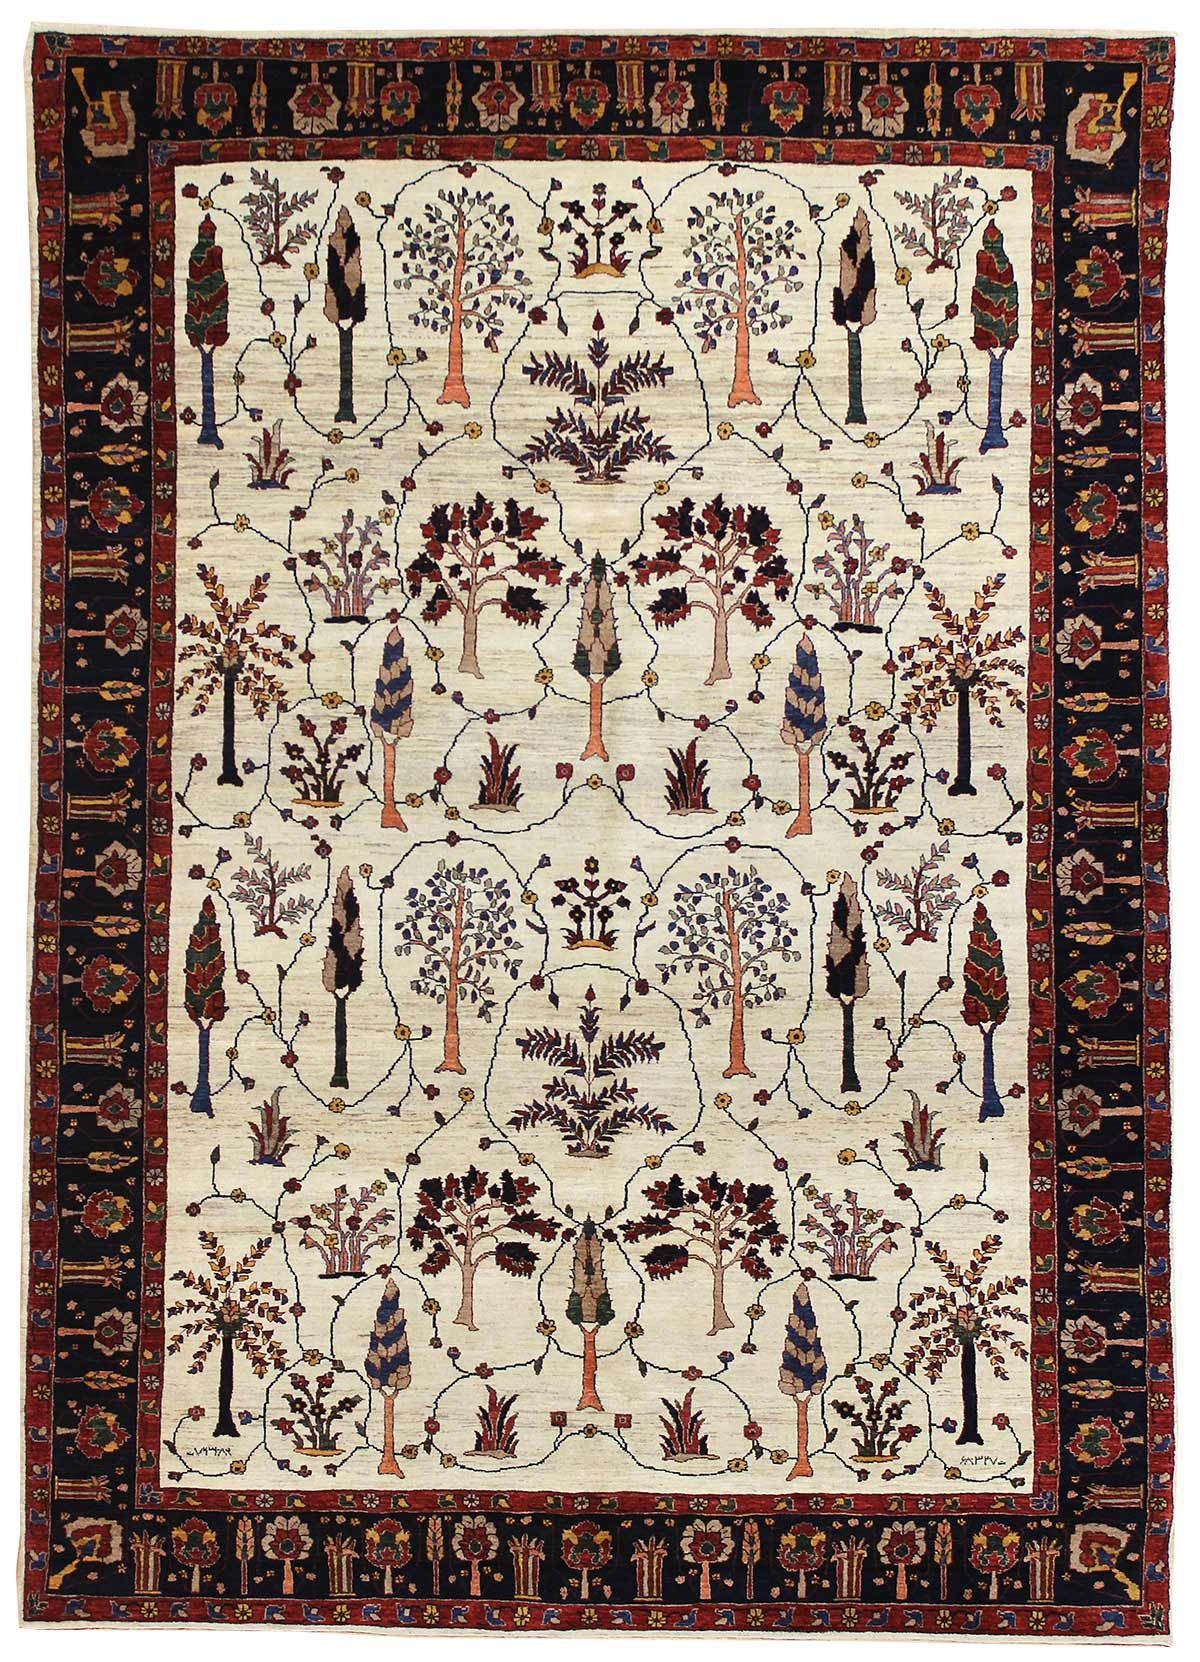 Persian Gabbeh Rugs Gallery Persian Bulurbaff Rug Hand Knotted In Persia Size 7 Feet 1 Inch Es X 10 Feet 1 Inch Es